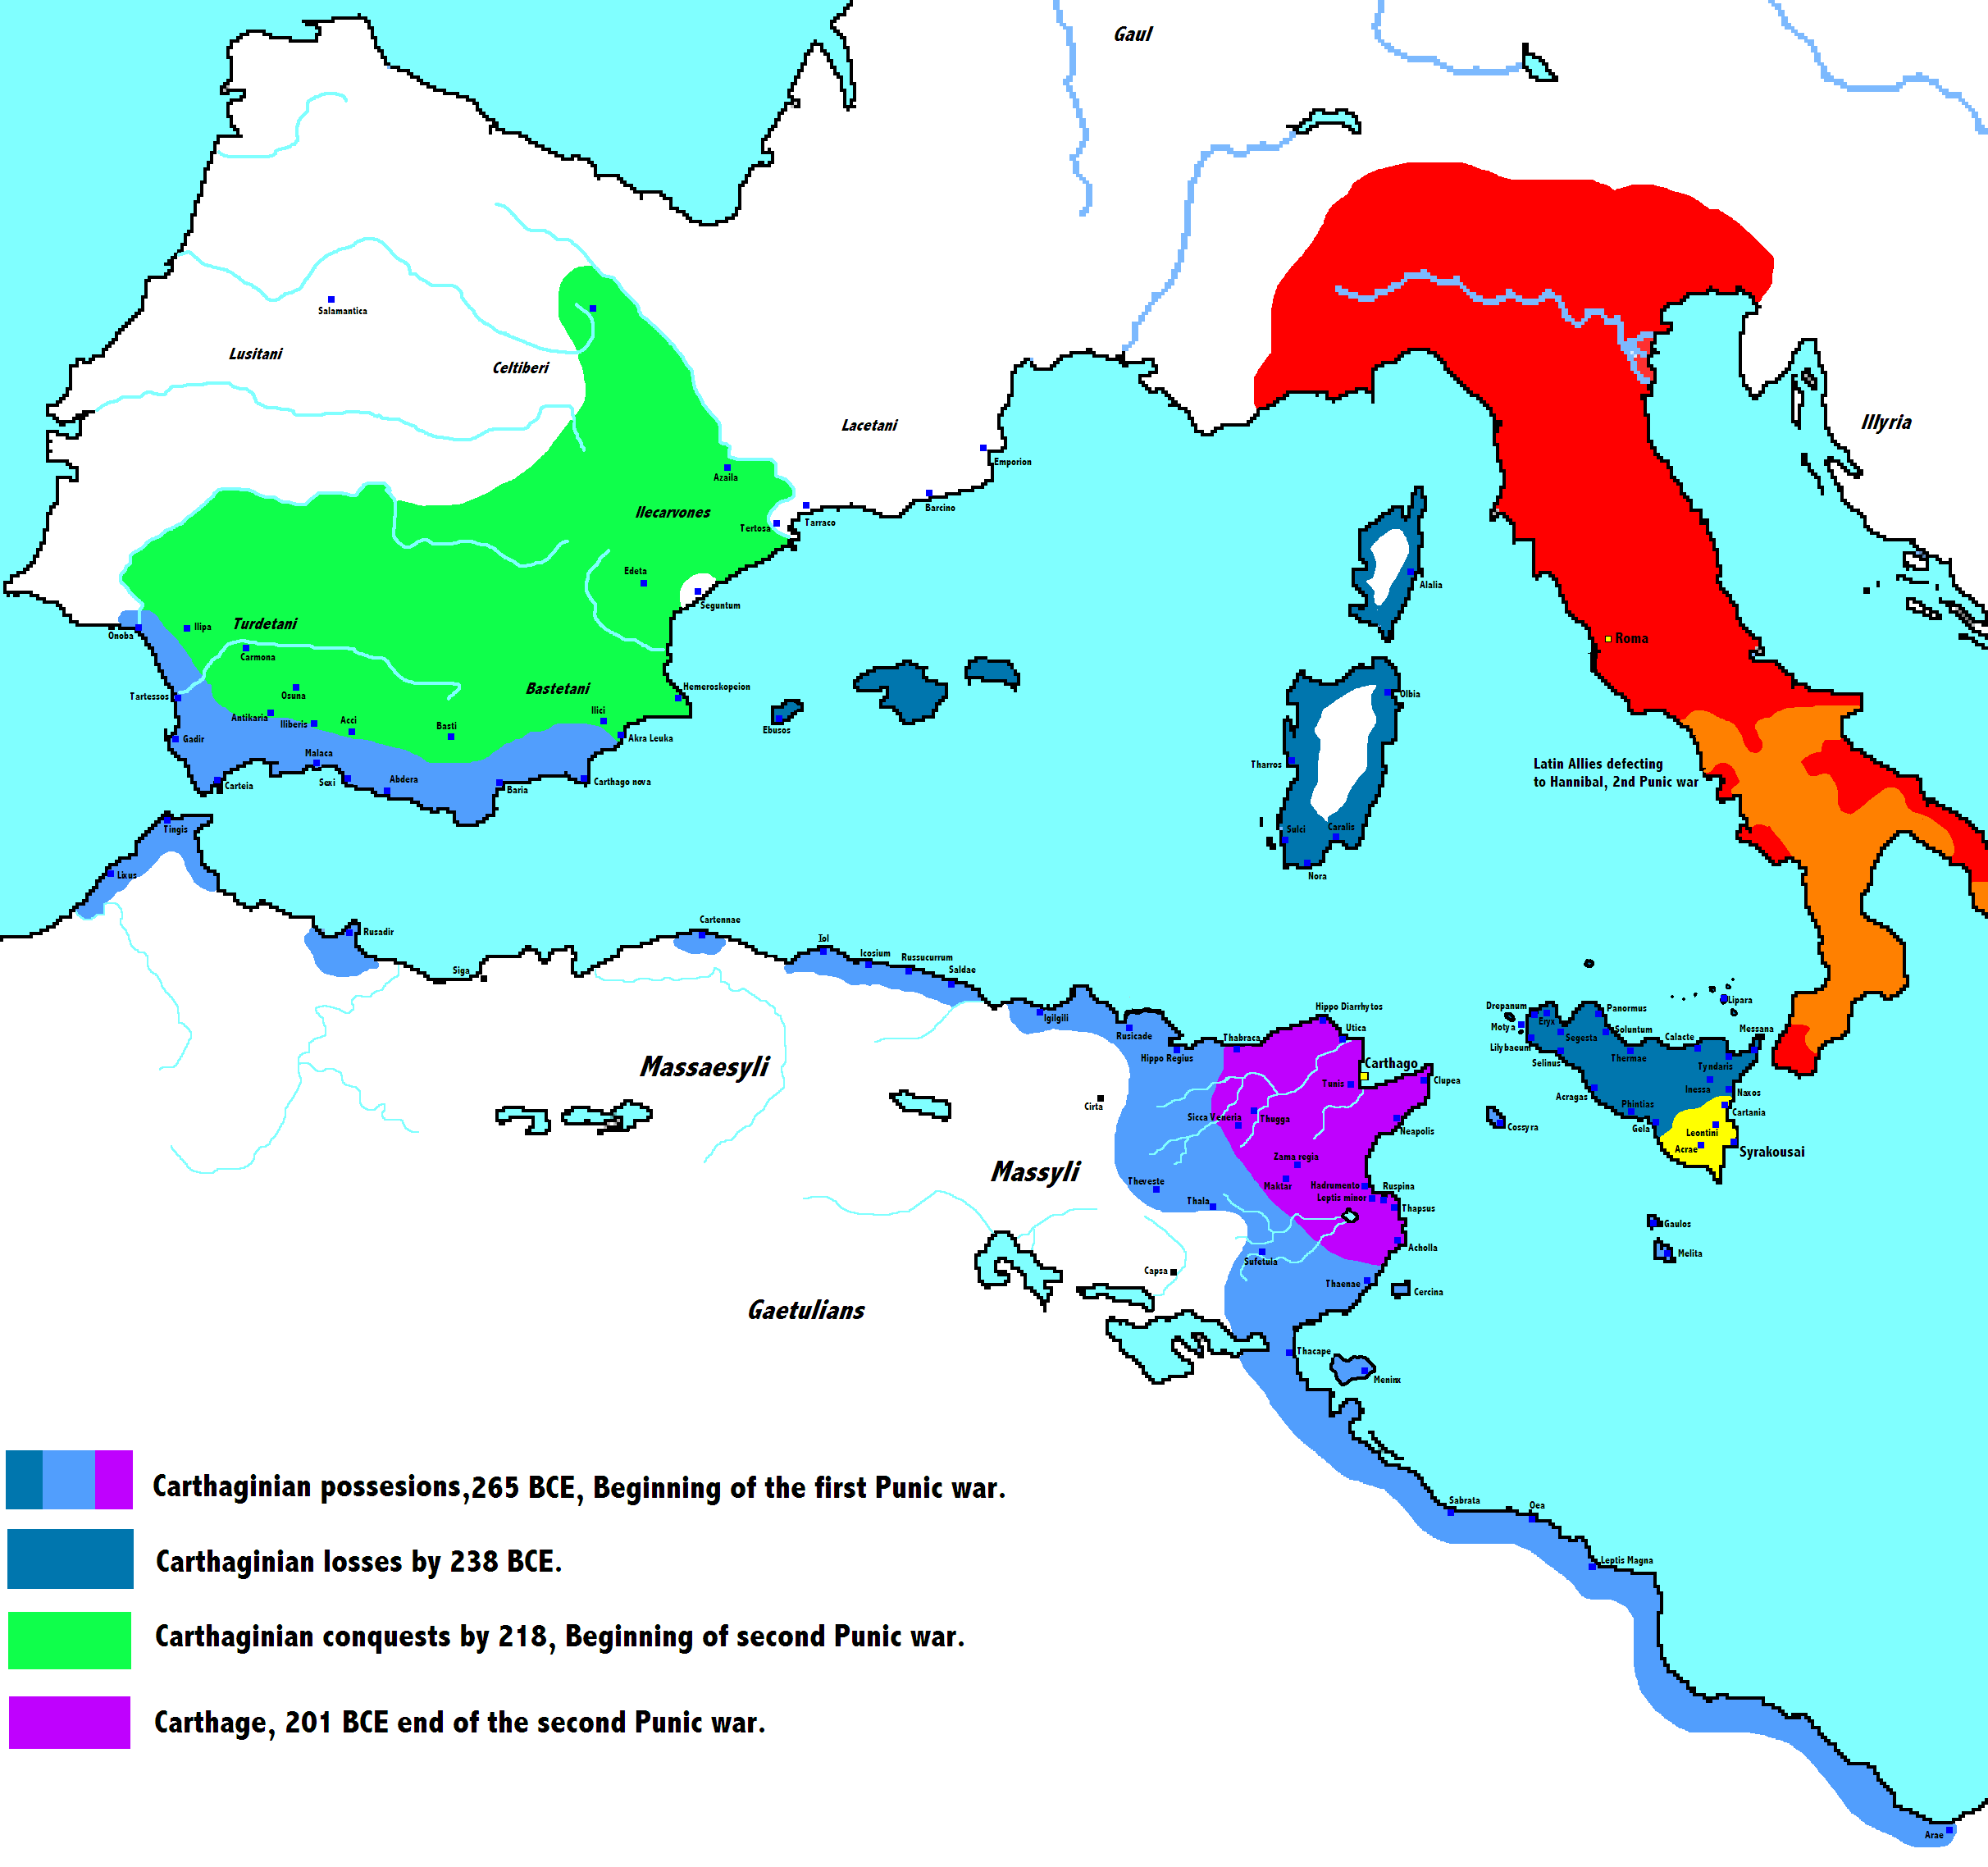 What were the causes of the First Punic War?